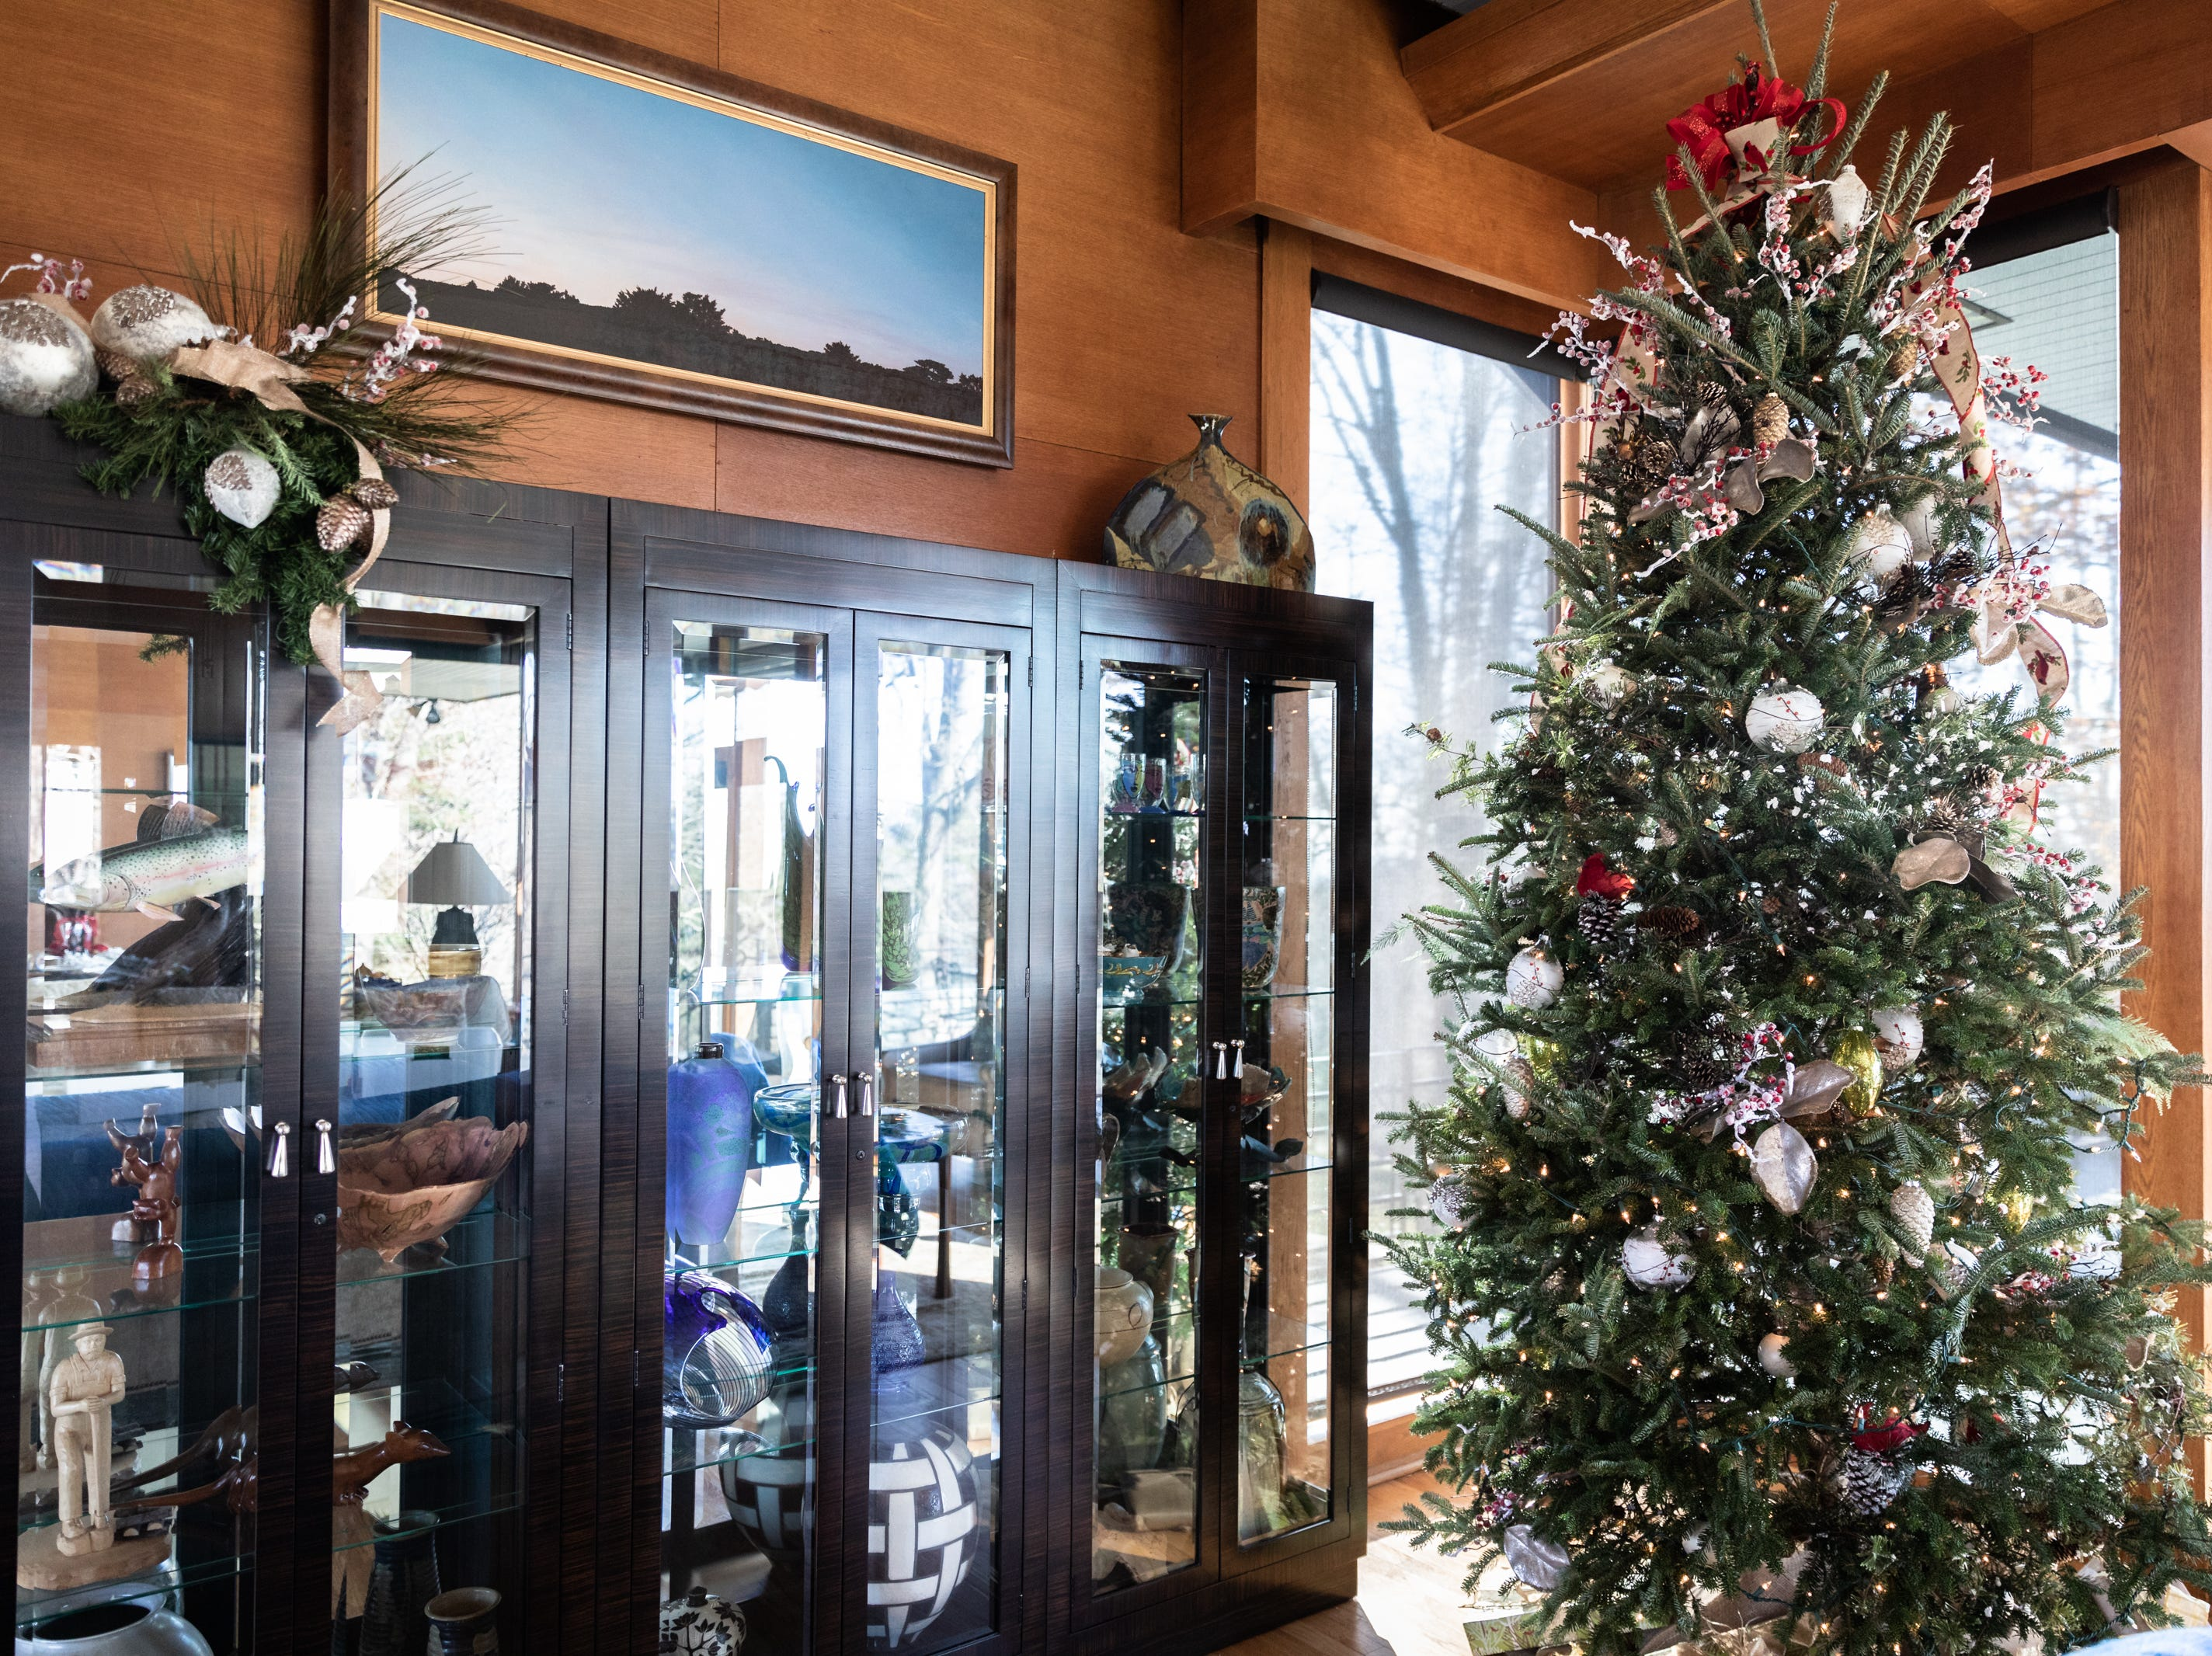 A Christmas tree in the Governor's Western Residence on Patton Mountain Road in Asheville.